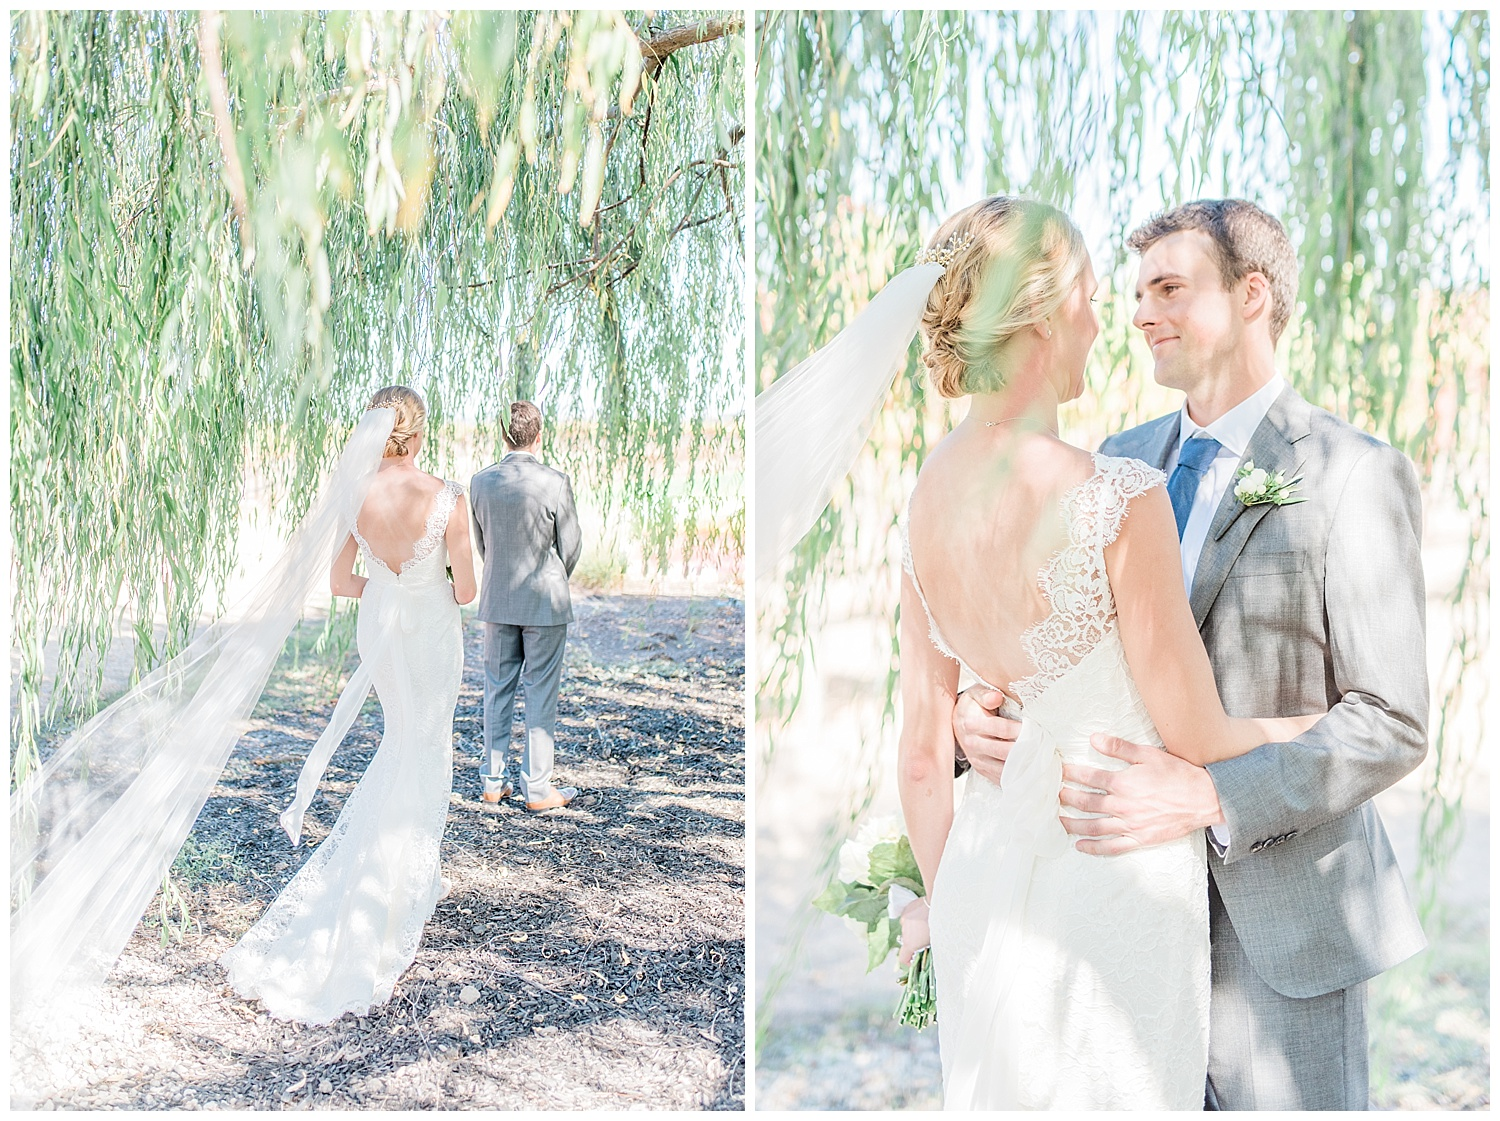 Janine_Licare_Photography_wedding_photographer_san_francisco_First_Look.jpg